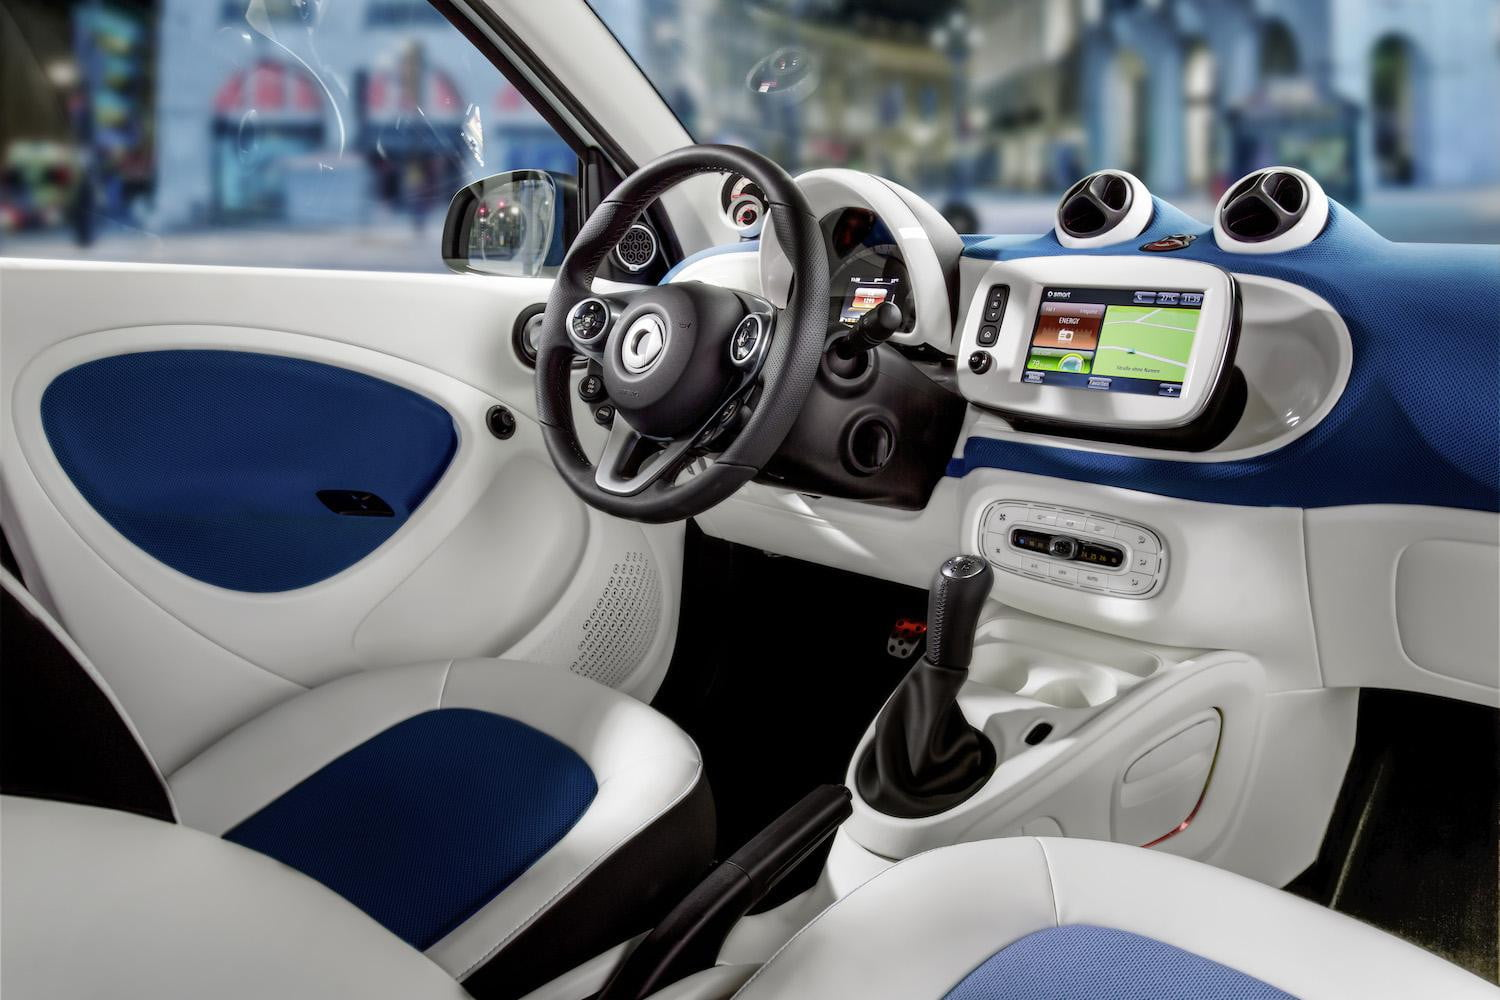 2016 smart fortwo official specs photos and performance digital trends. Black Bedroom Furniture Sets. Home Design Ideas